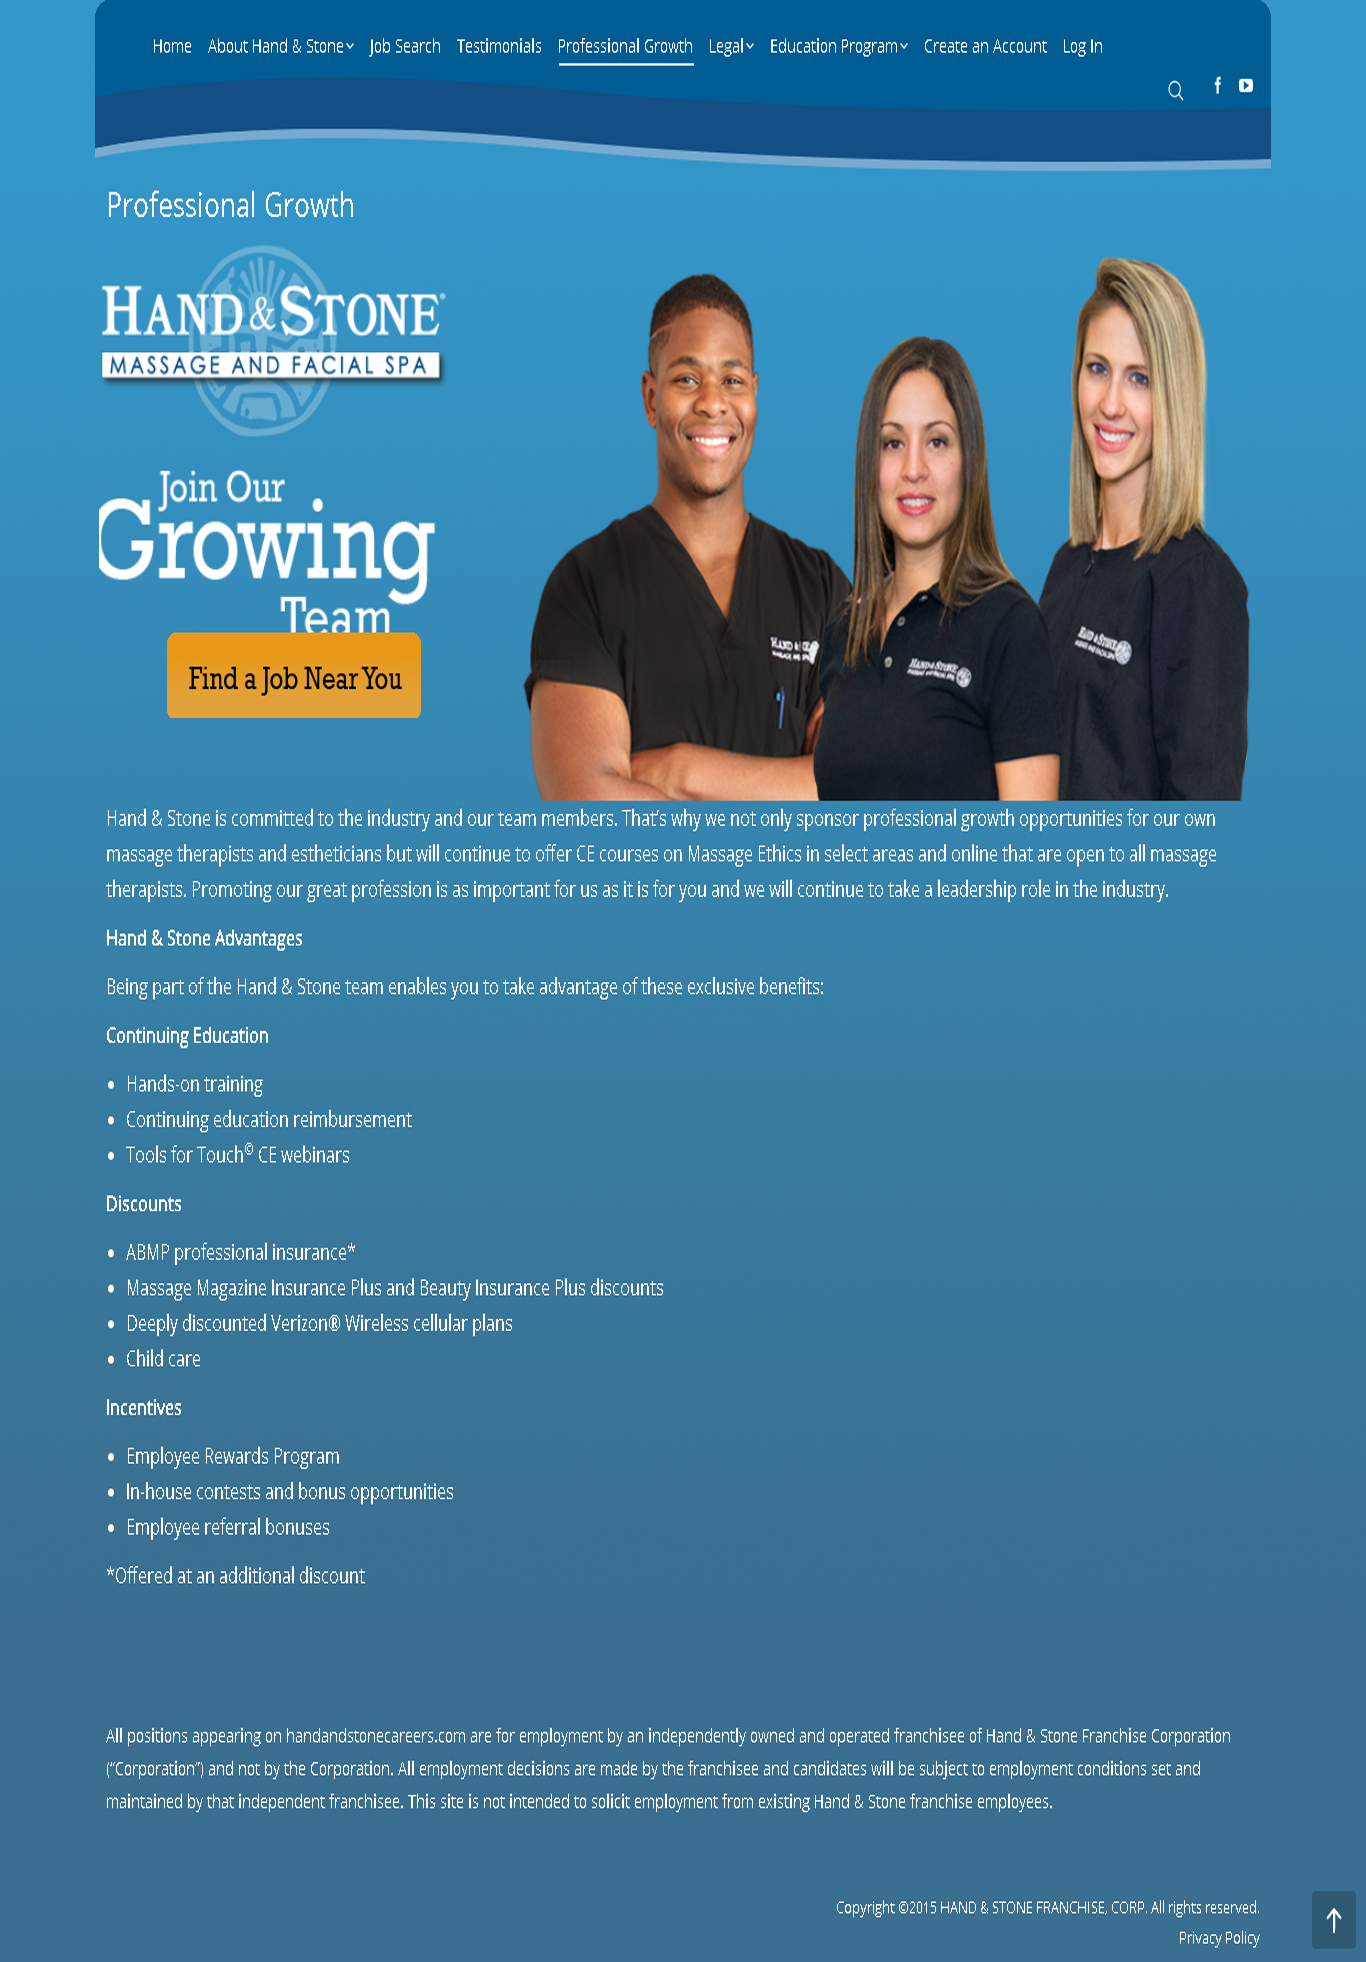 screencapture-handandstonecareers-professional-growth-2019-09-17-16_03_21